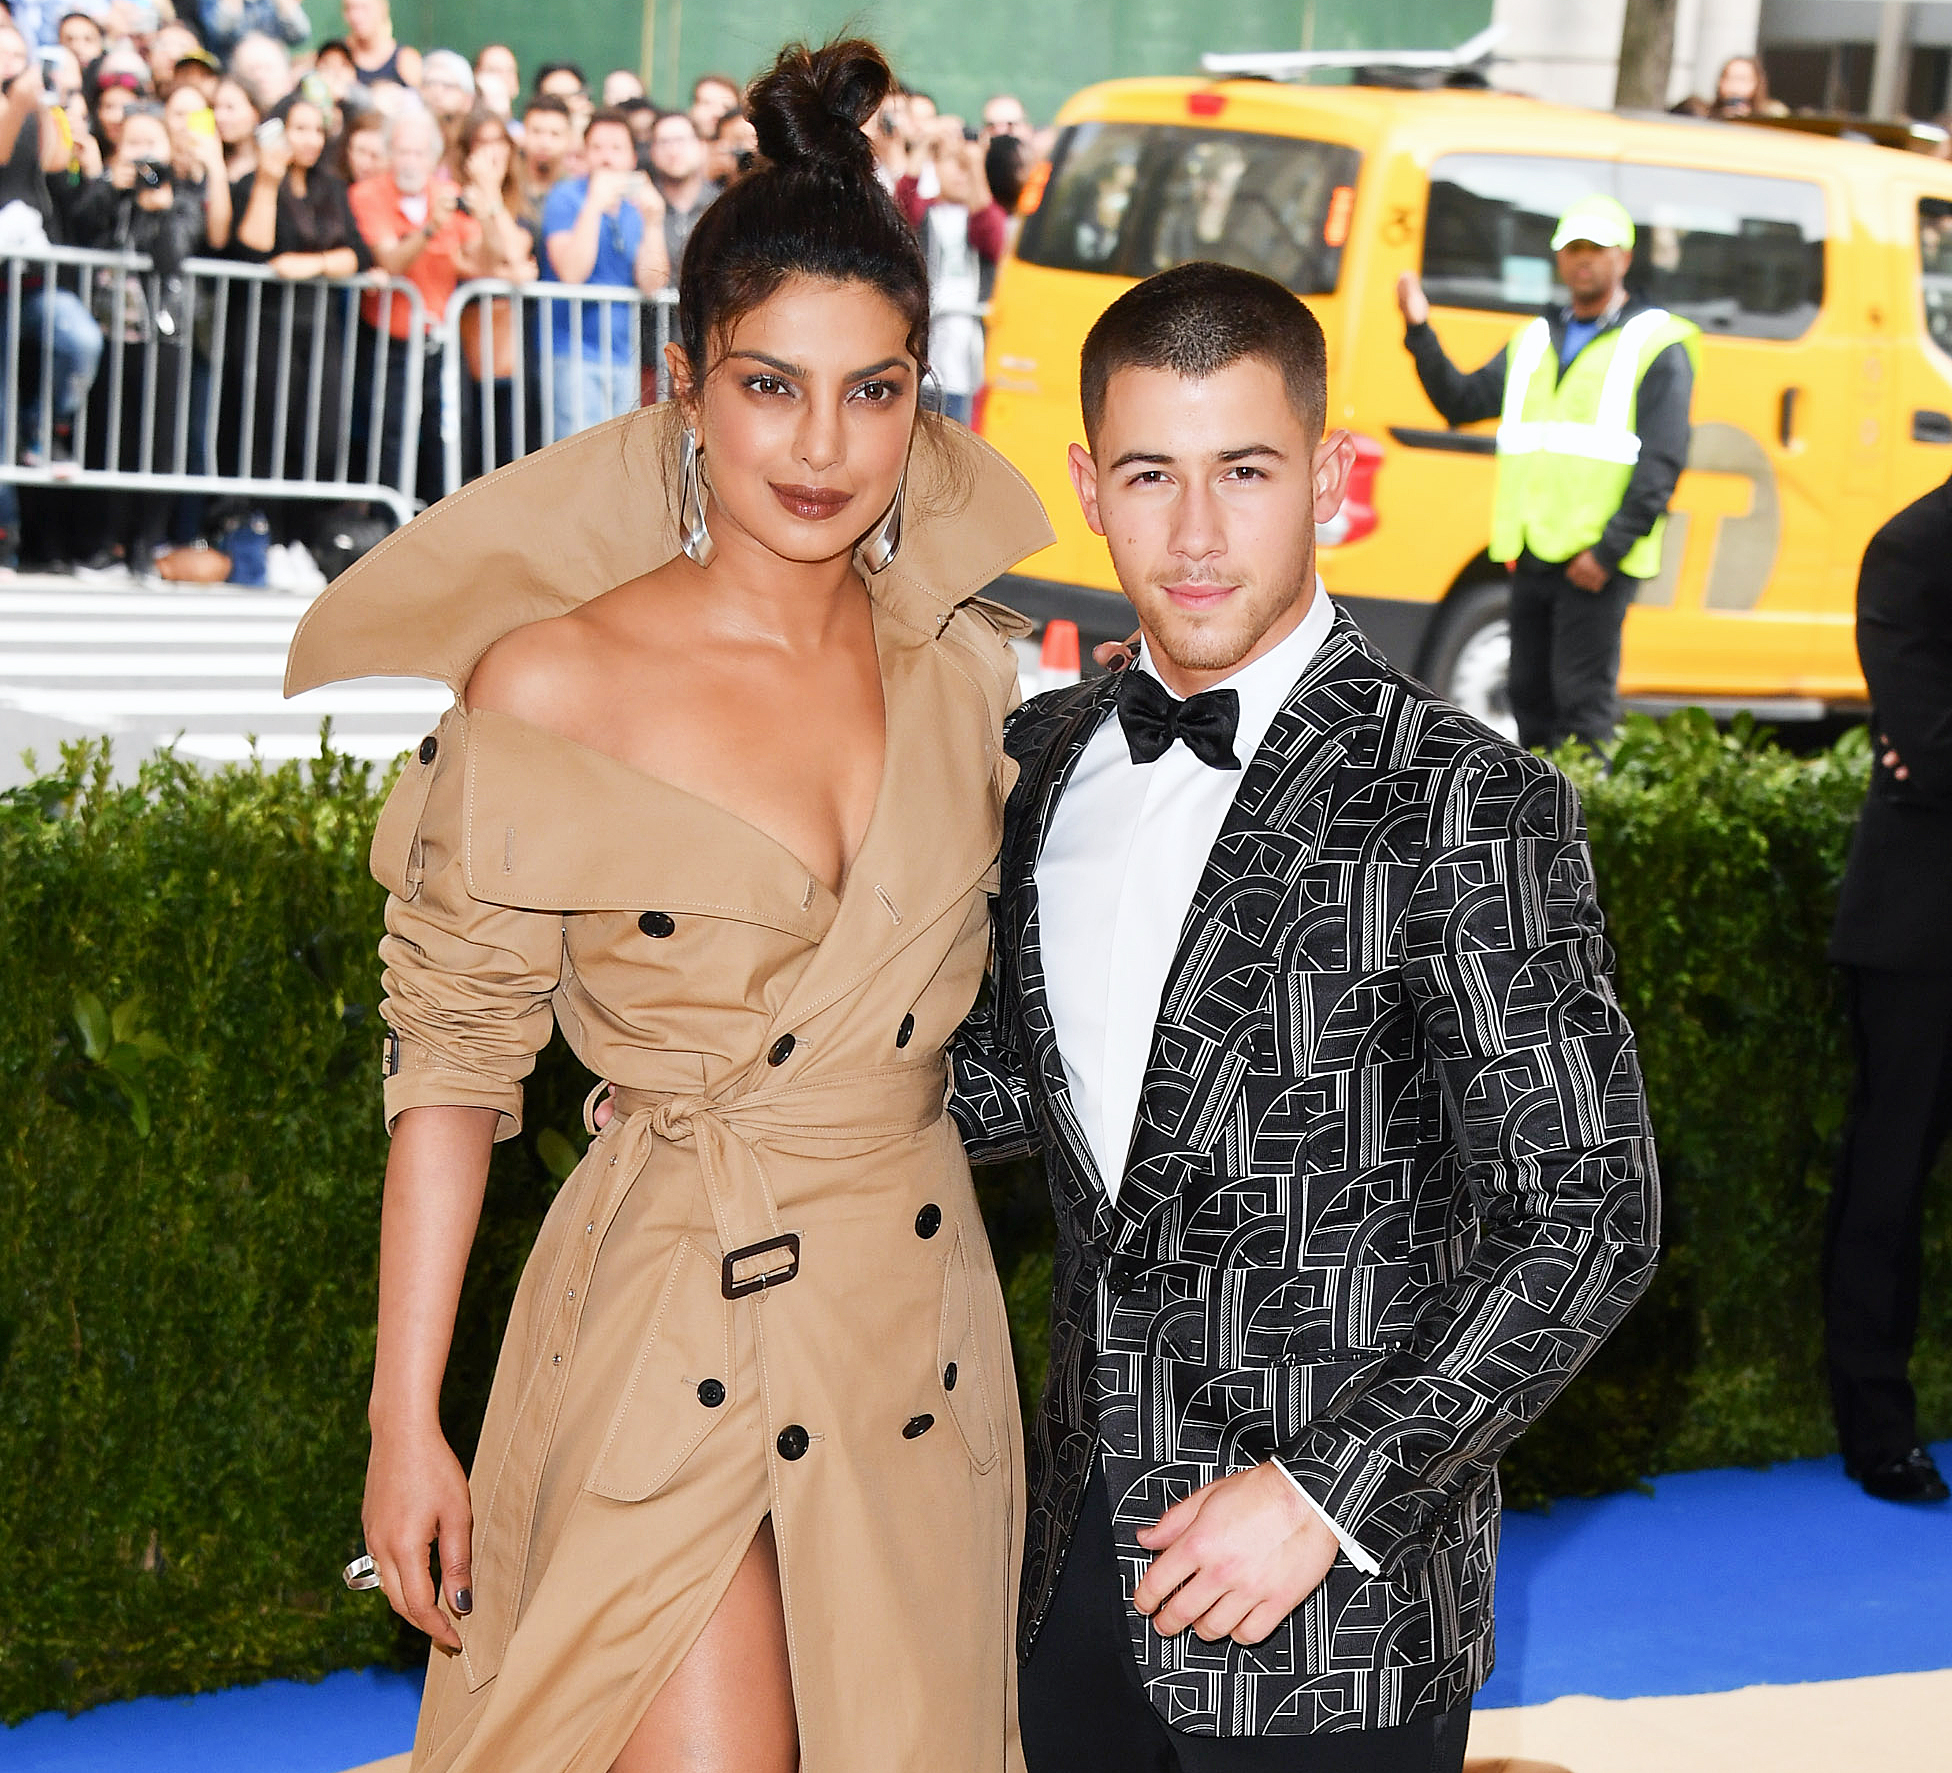 Priyanka Chopra dating Nick Jonas?